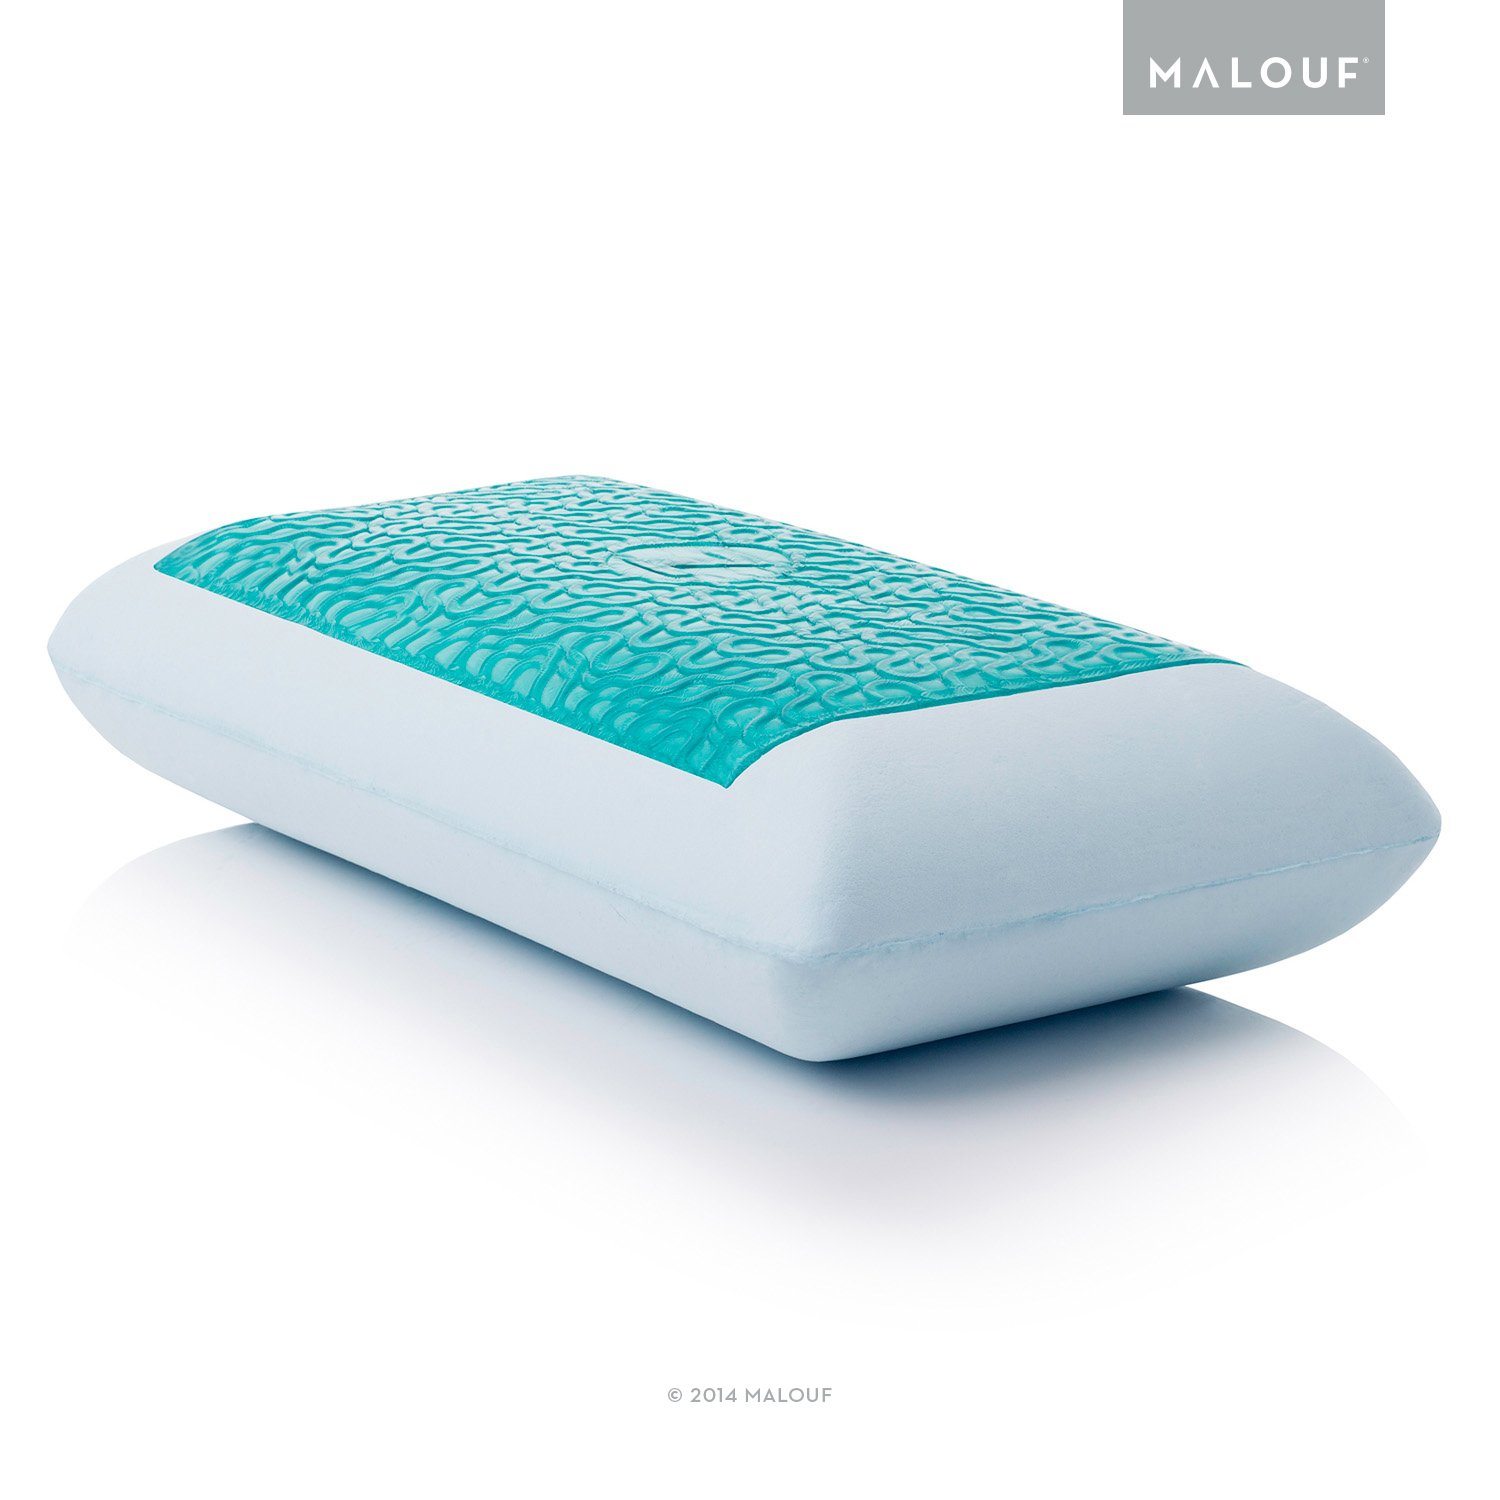 Just Be Cool The 5 Best Gel Pillows on the Market Elite